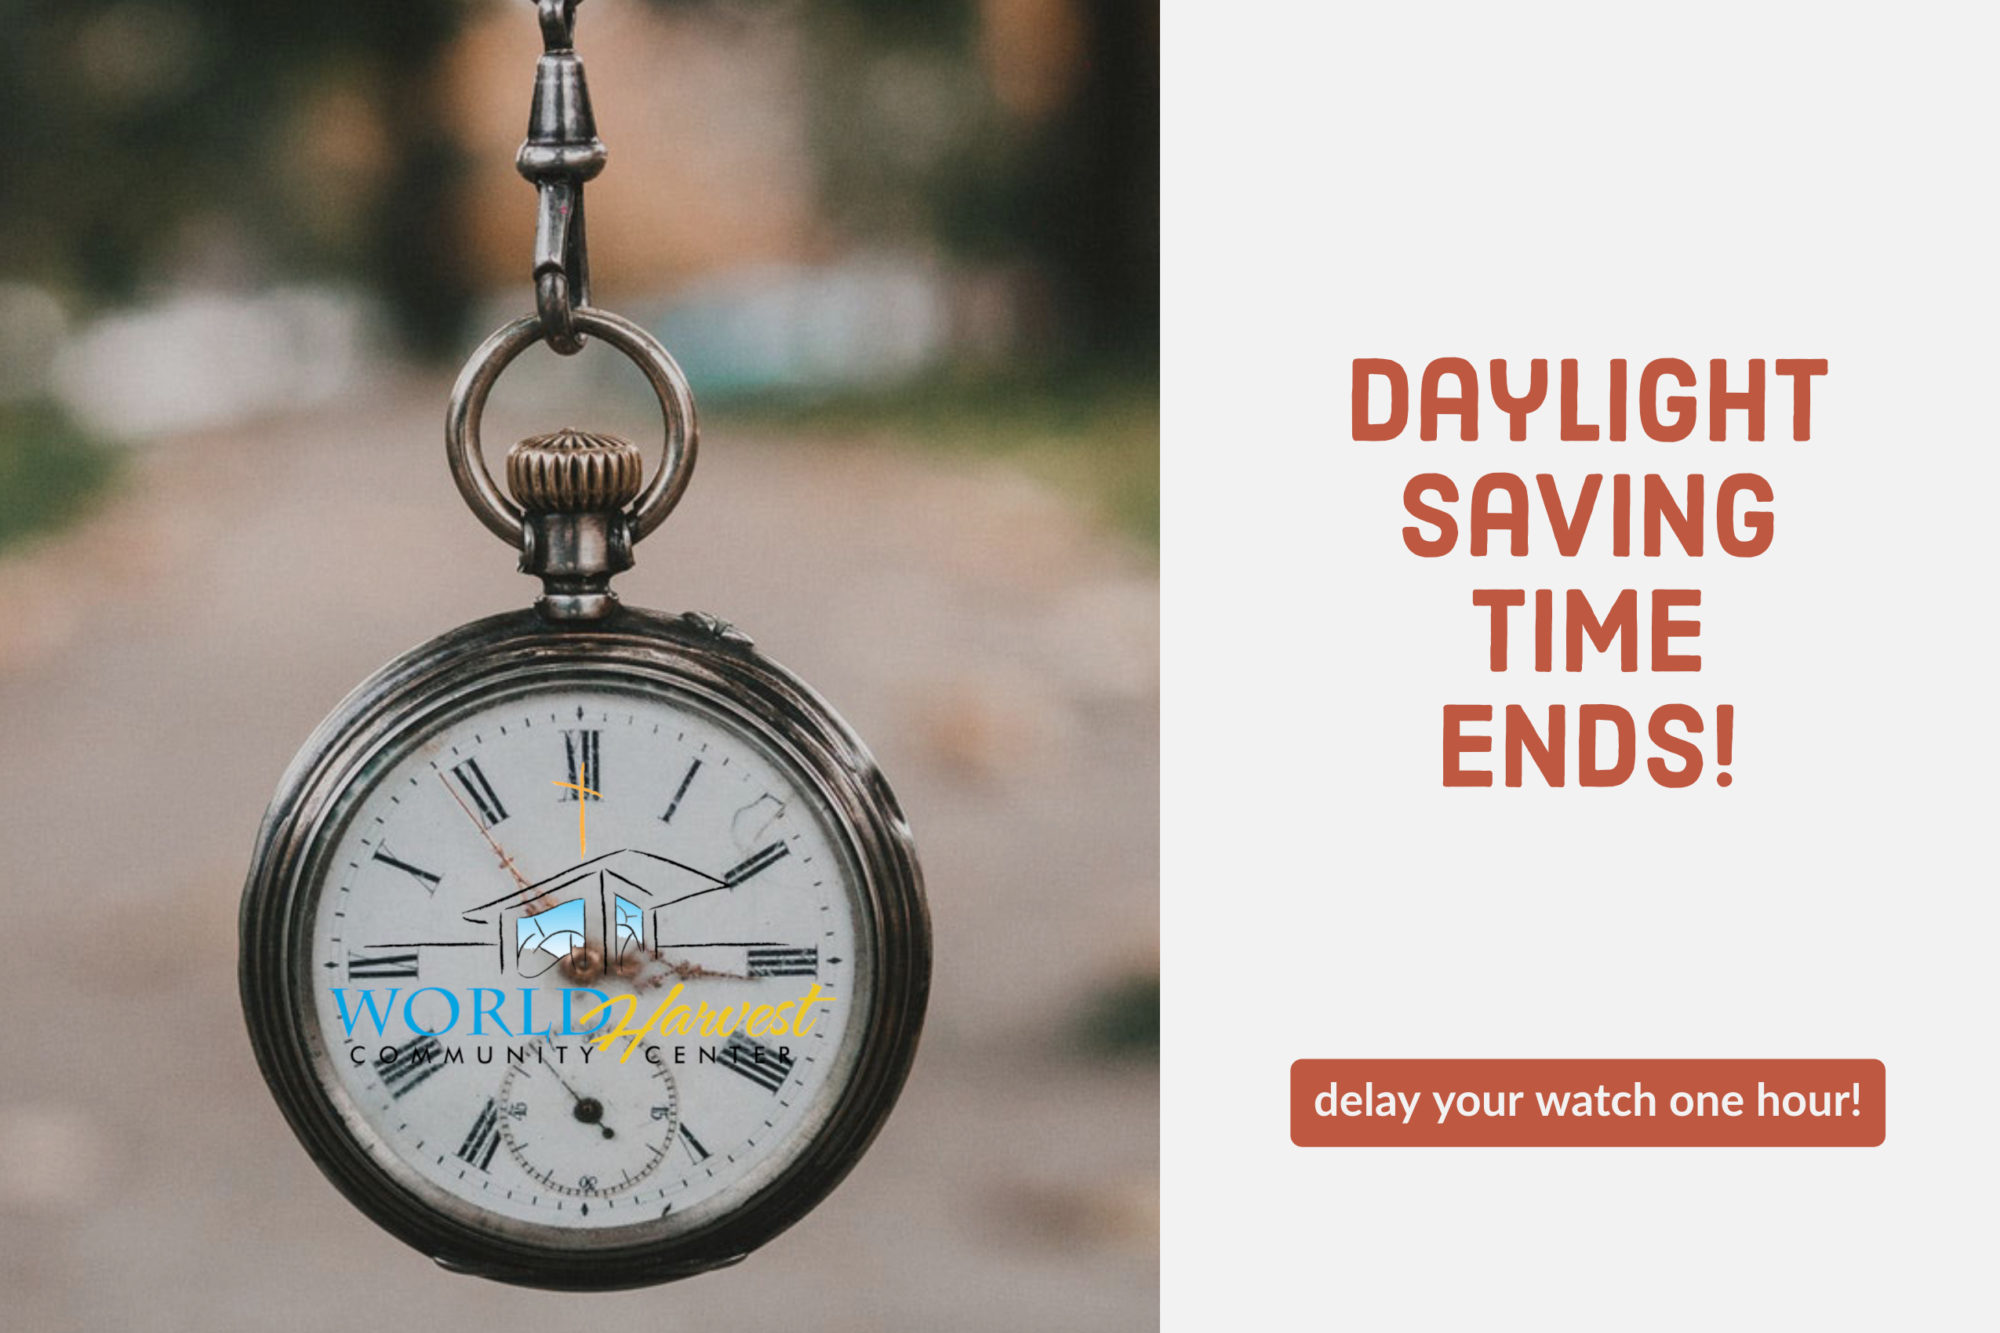 Daylight saving time end!